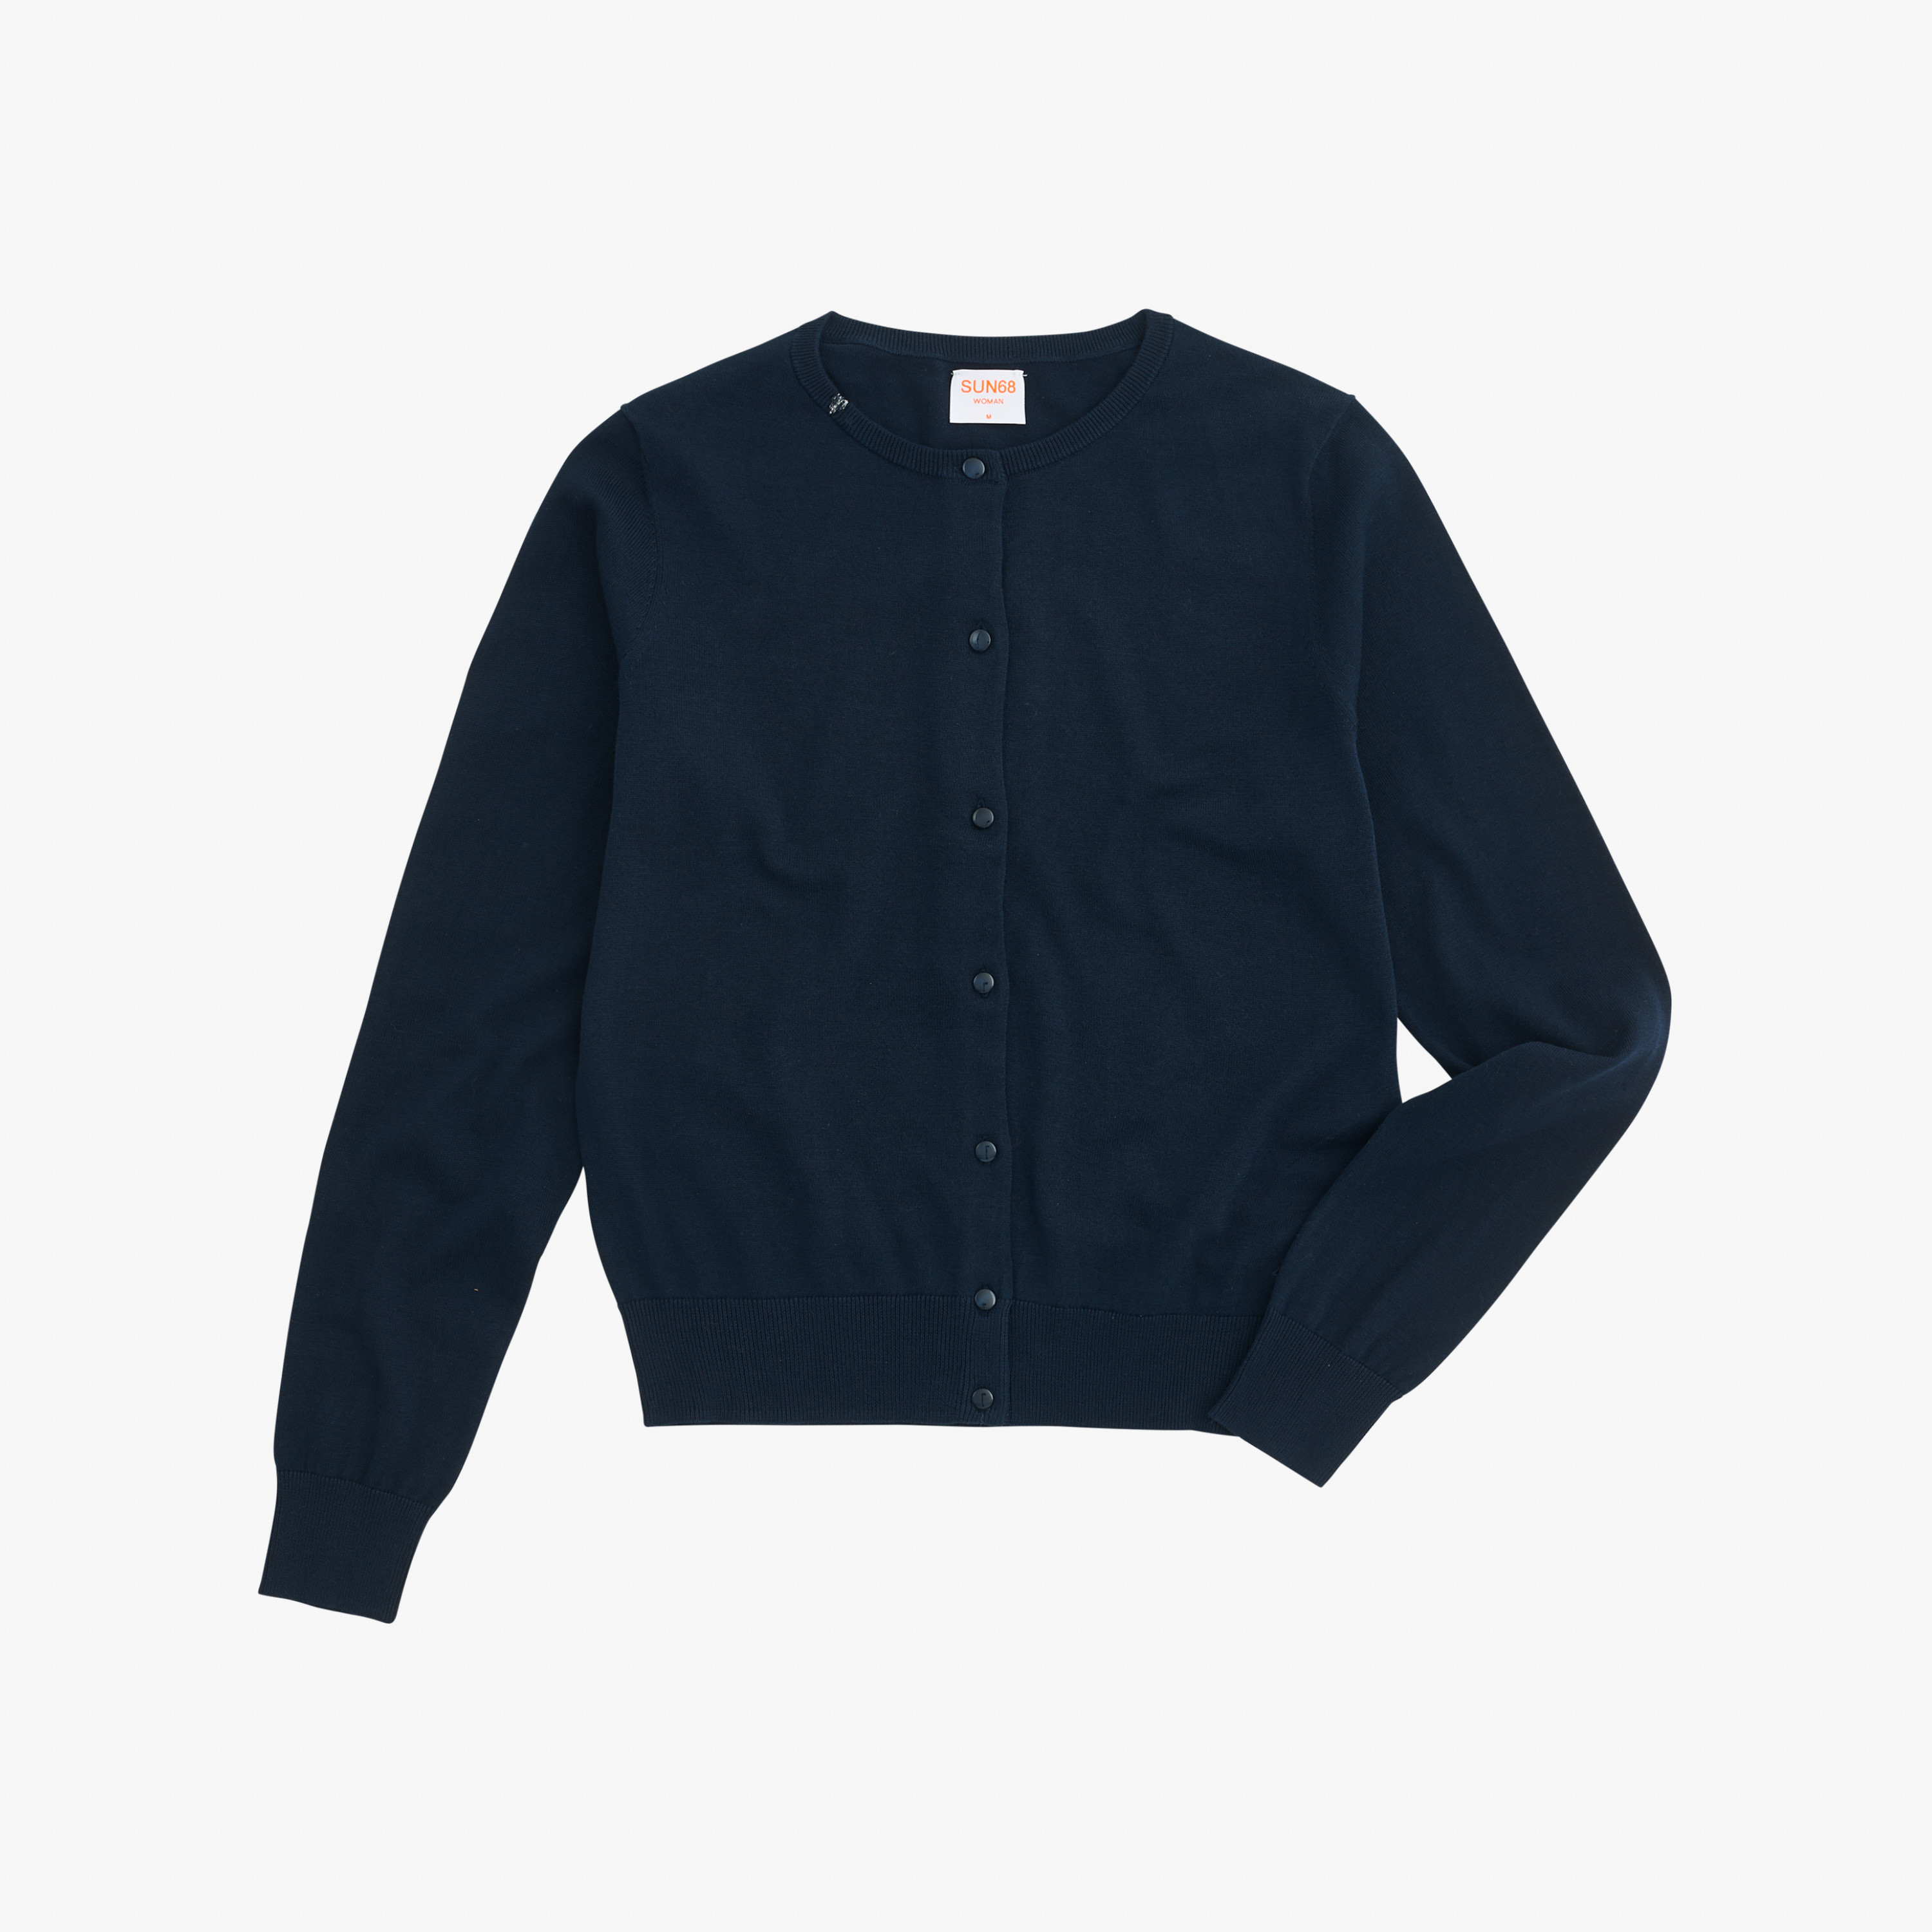 CARDIGAN SOLID NAVY BLUE